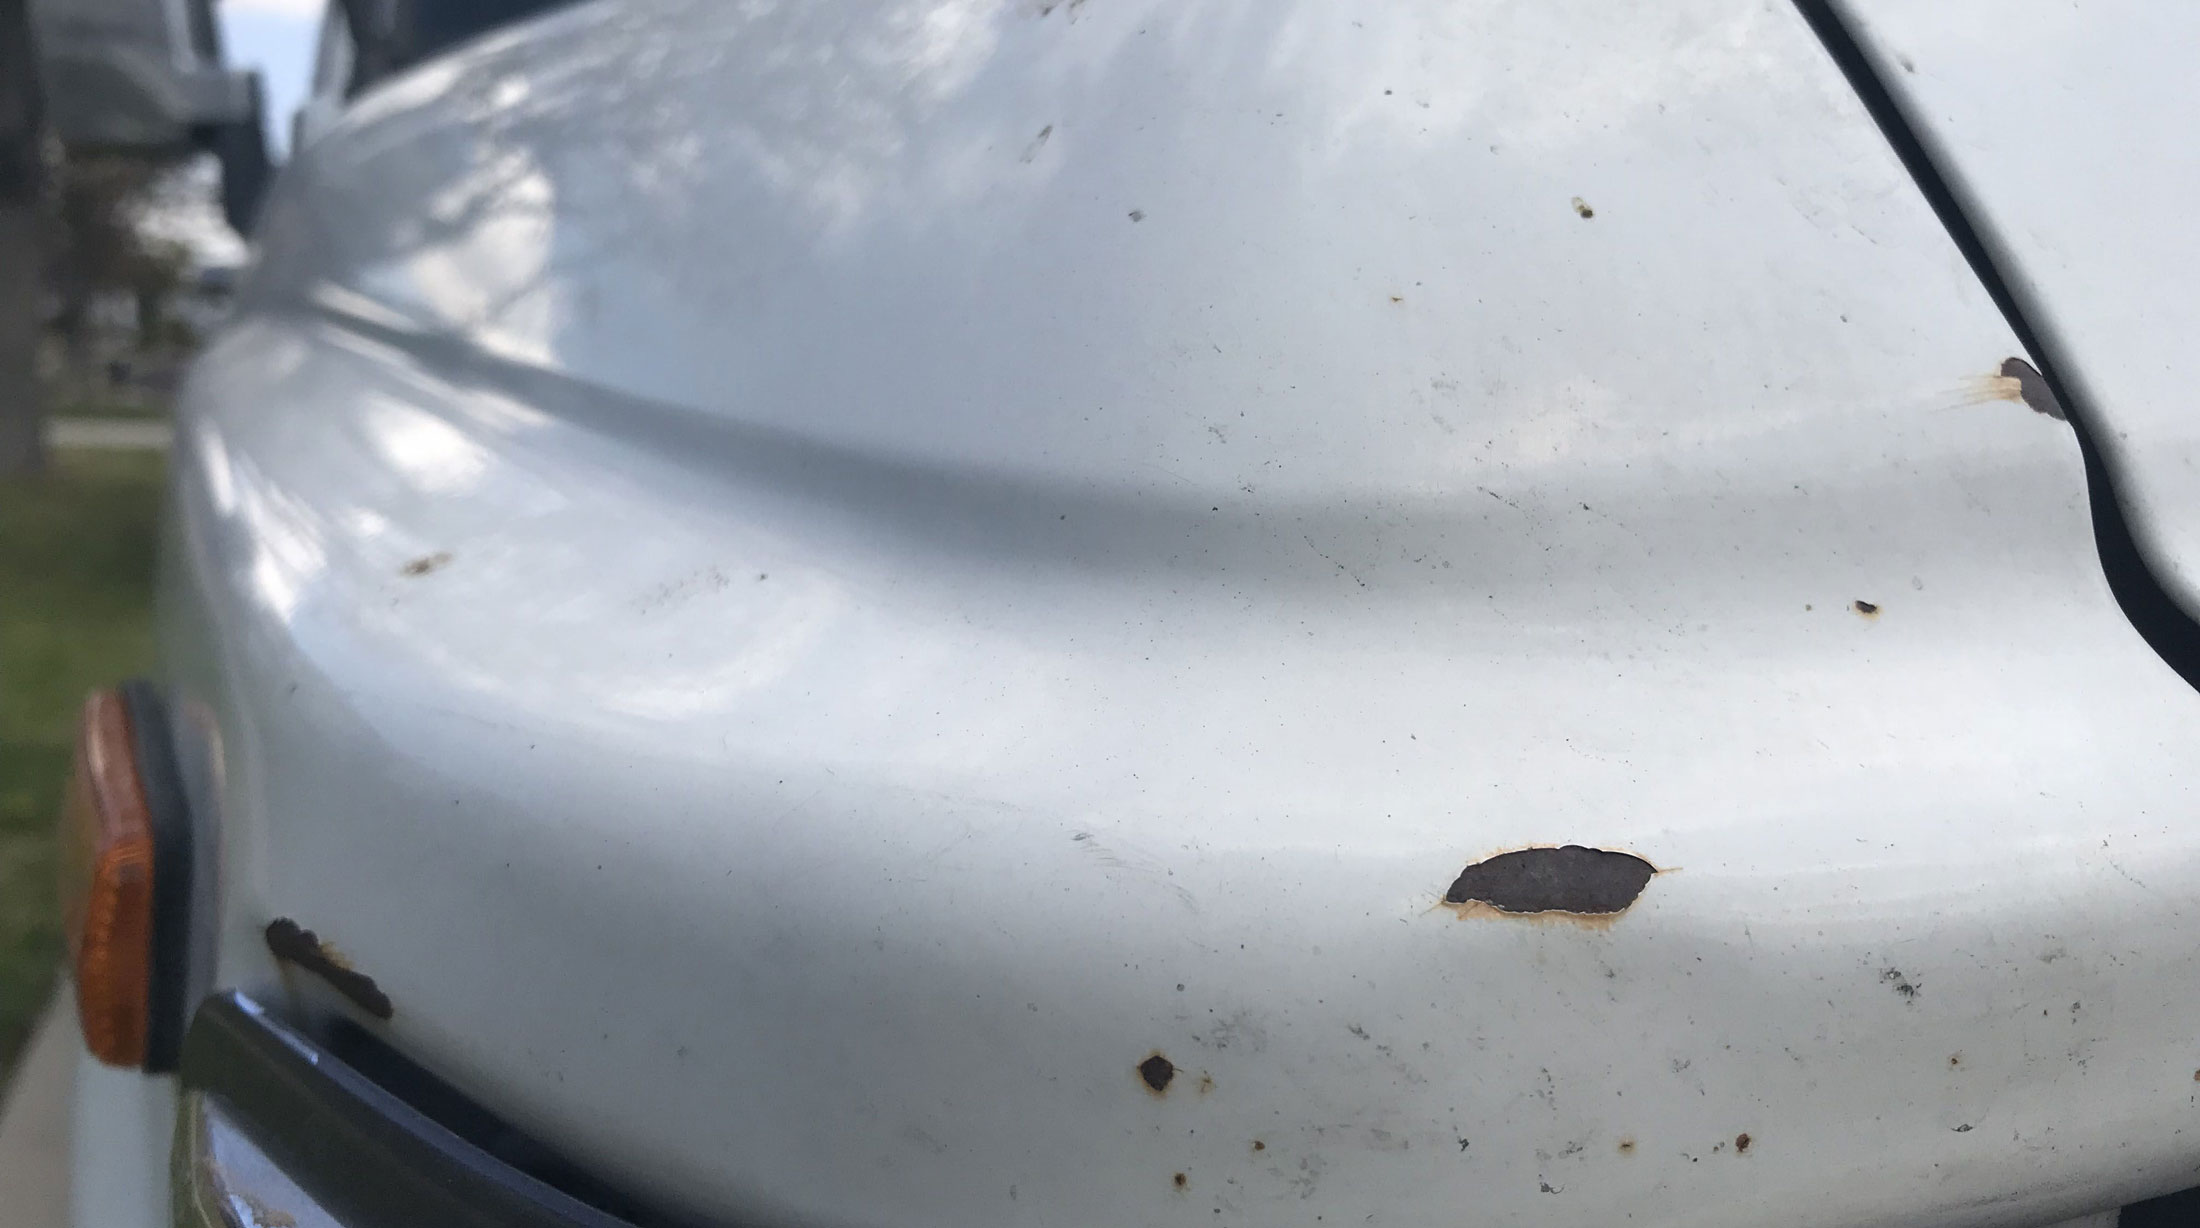 Why Is My Car Paint Chipping?